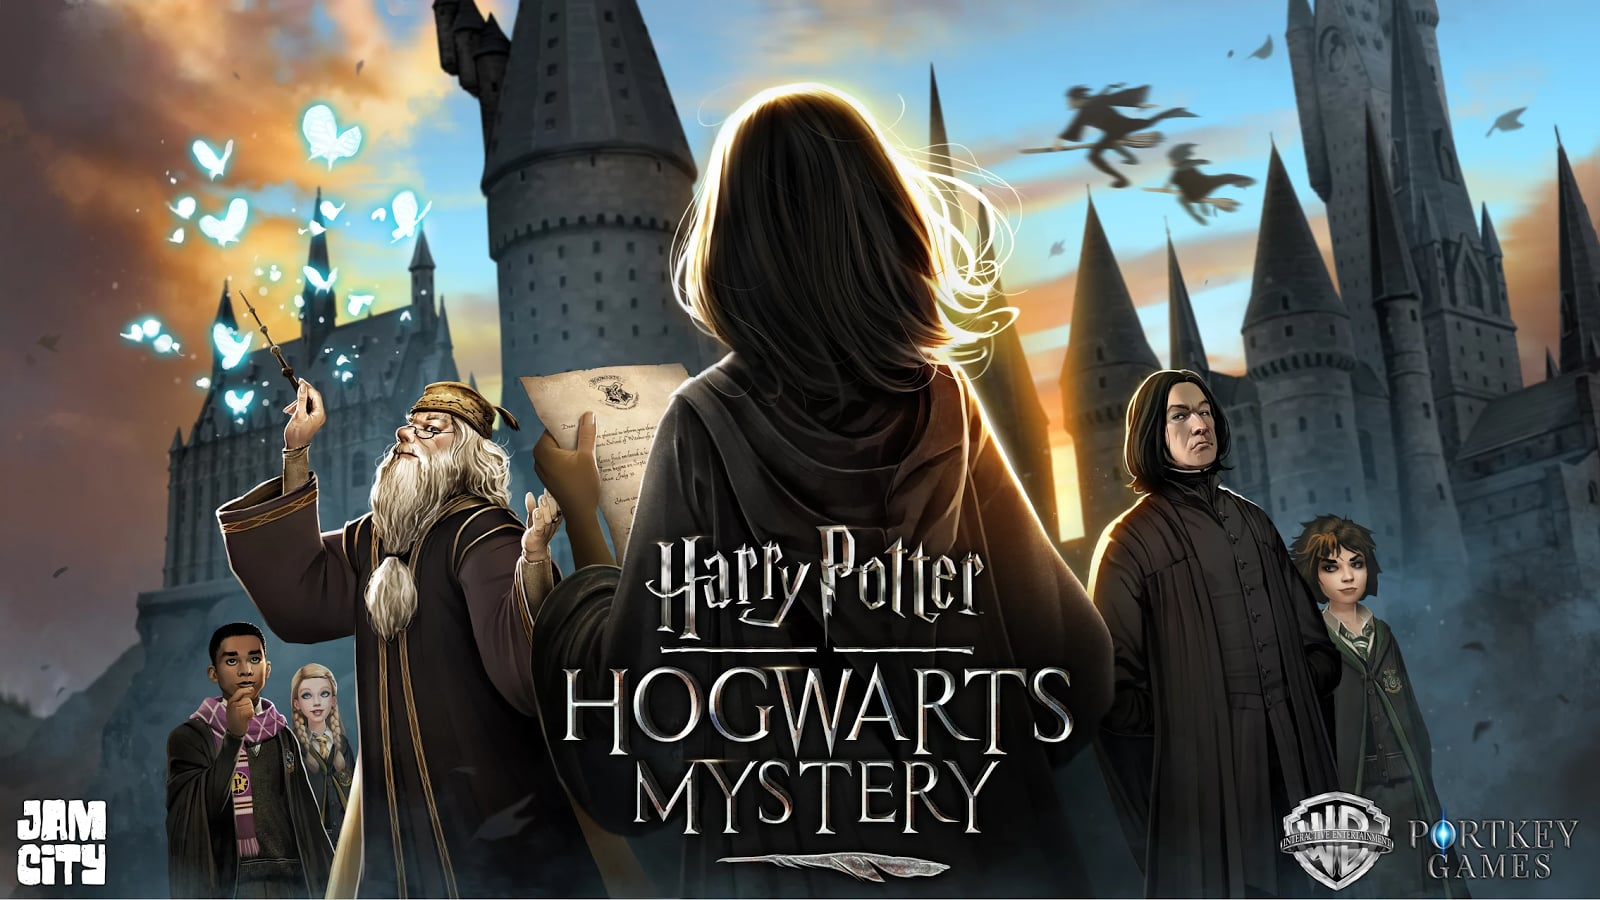 Check out This First Trailer for Harry Potter: Hogwarts Mystery